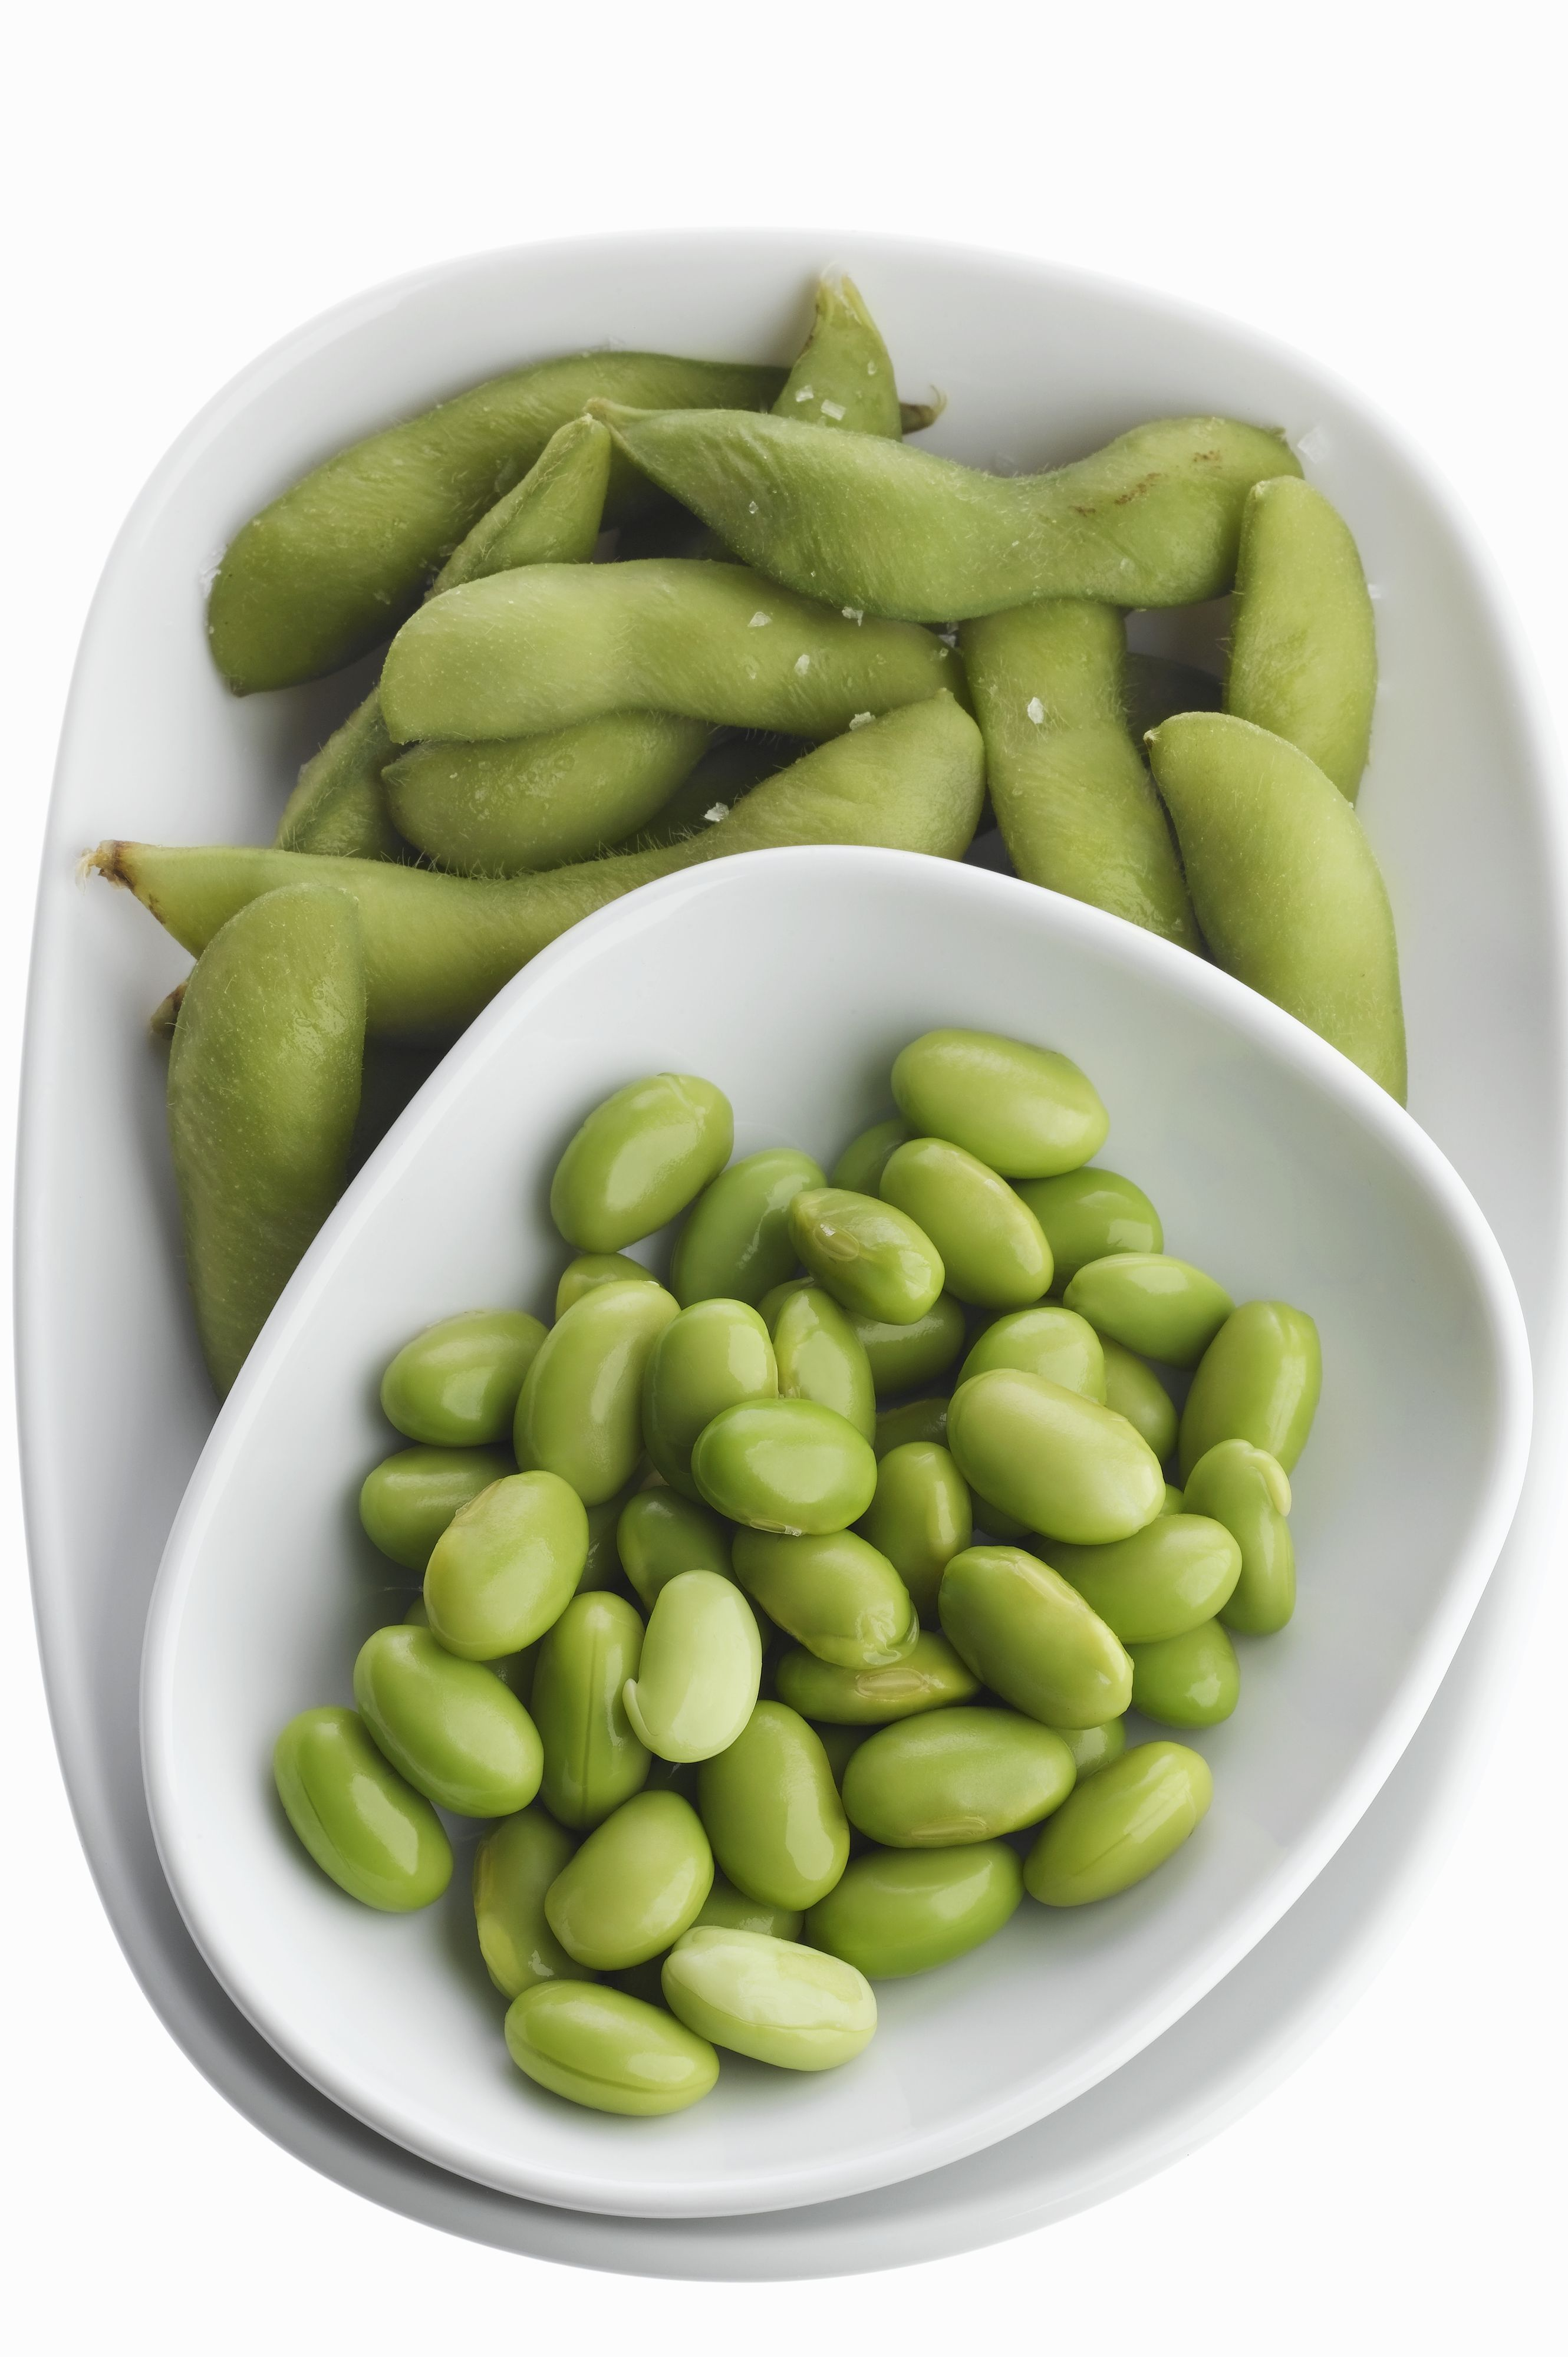 Edamame in bowl with chopsticks, overhead view